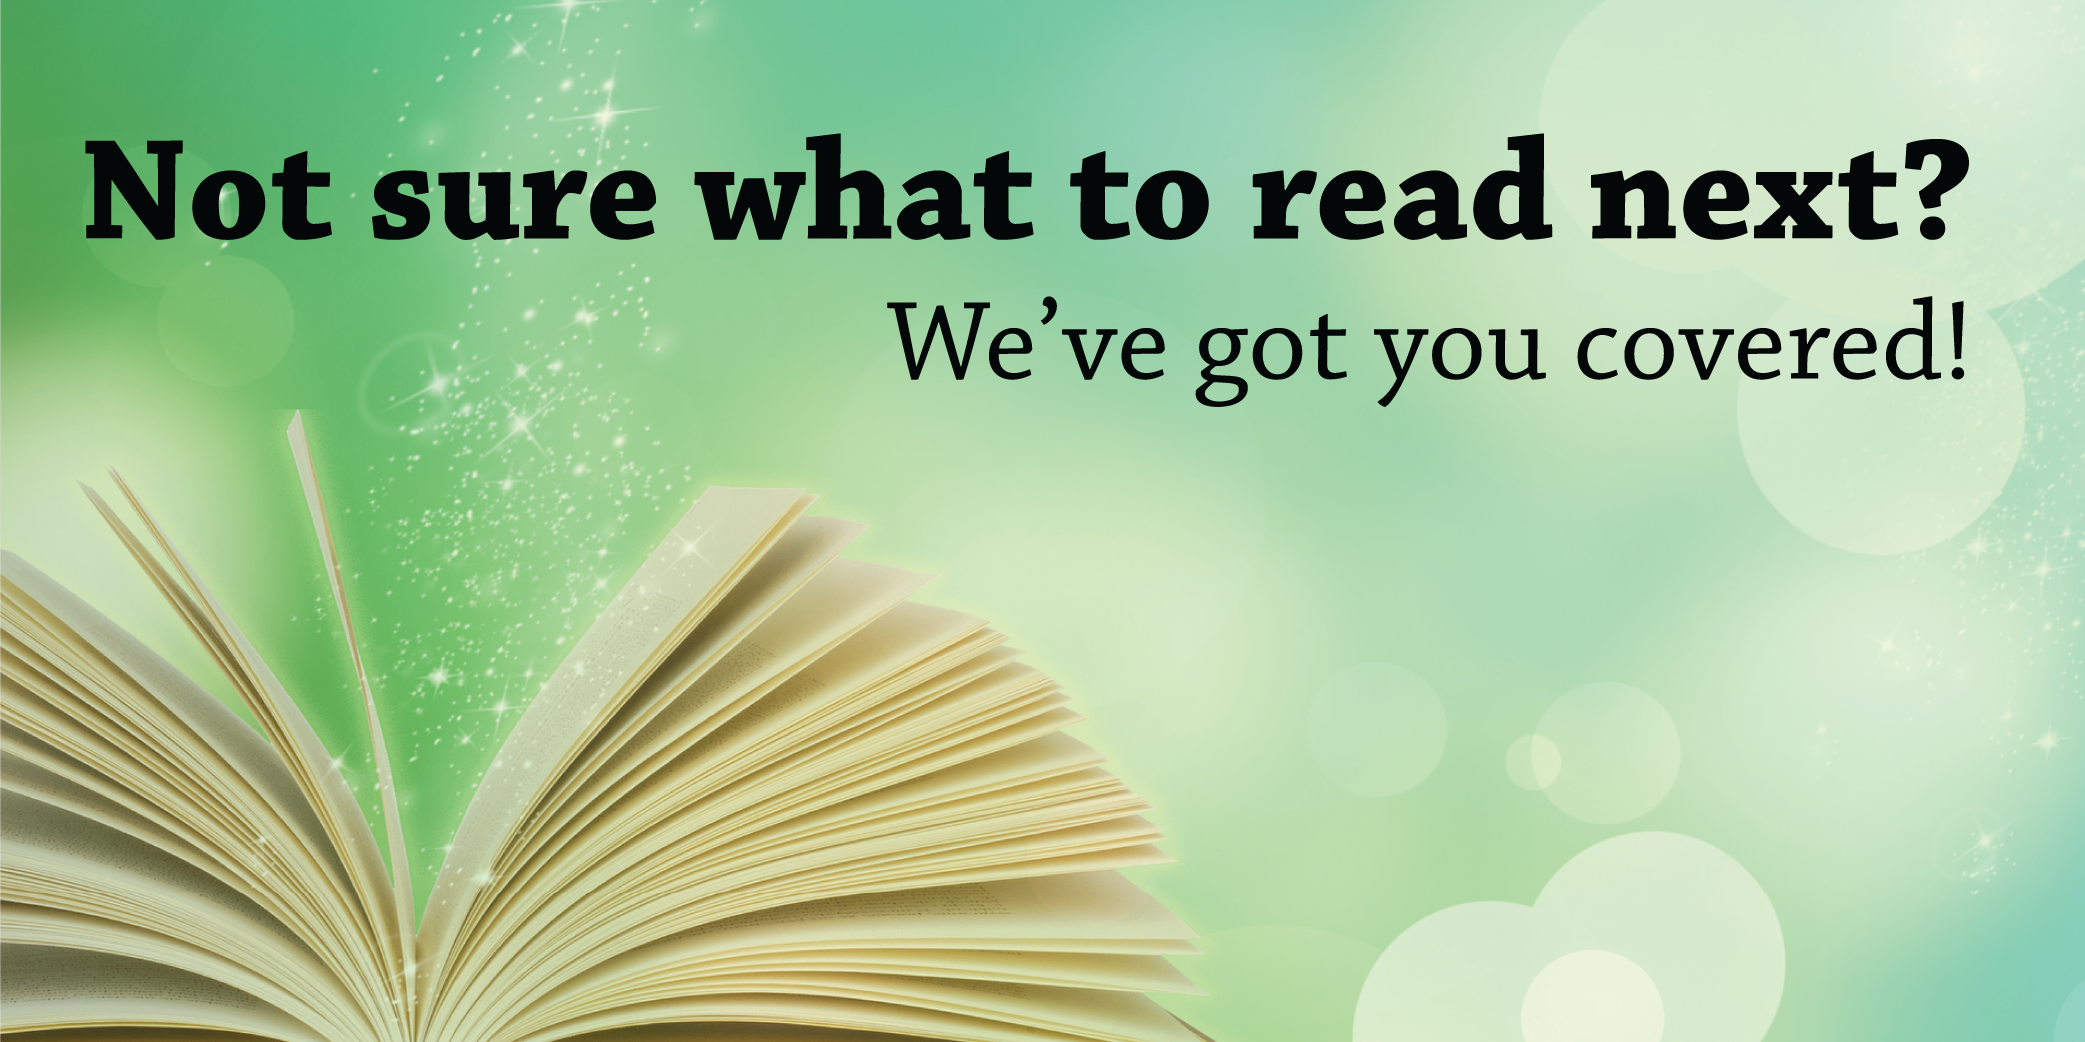 Not sure what to read next? We've got you covered!